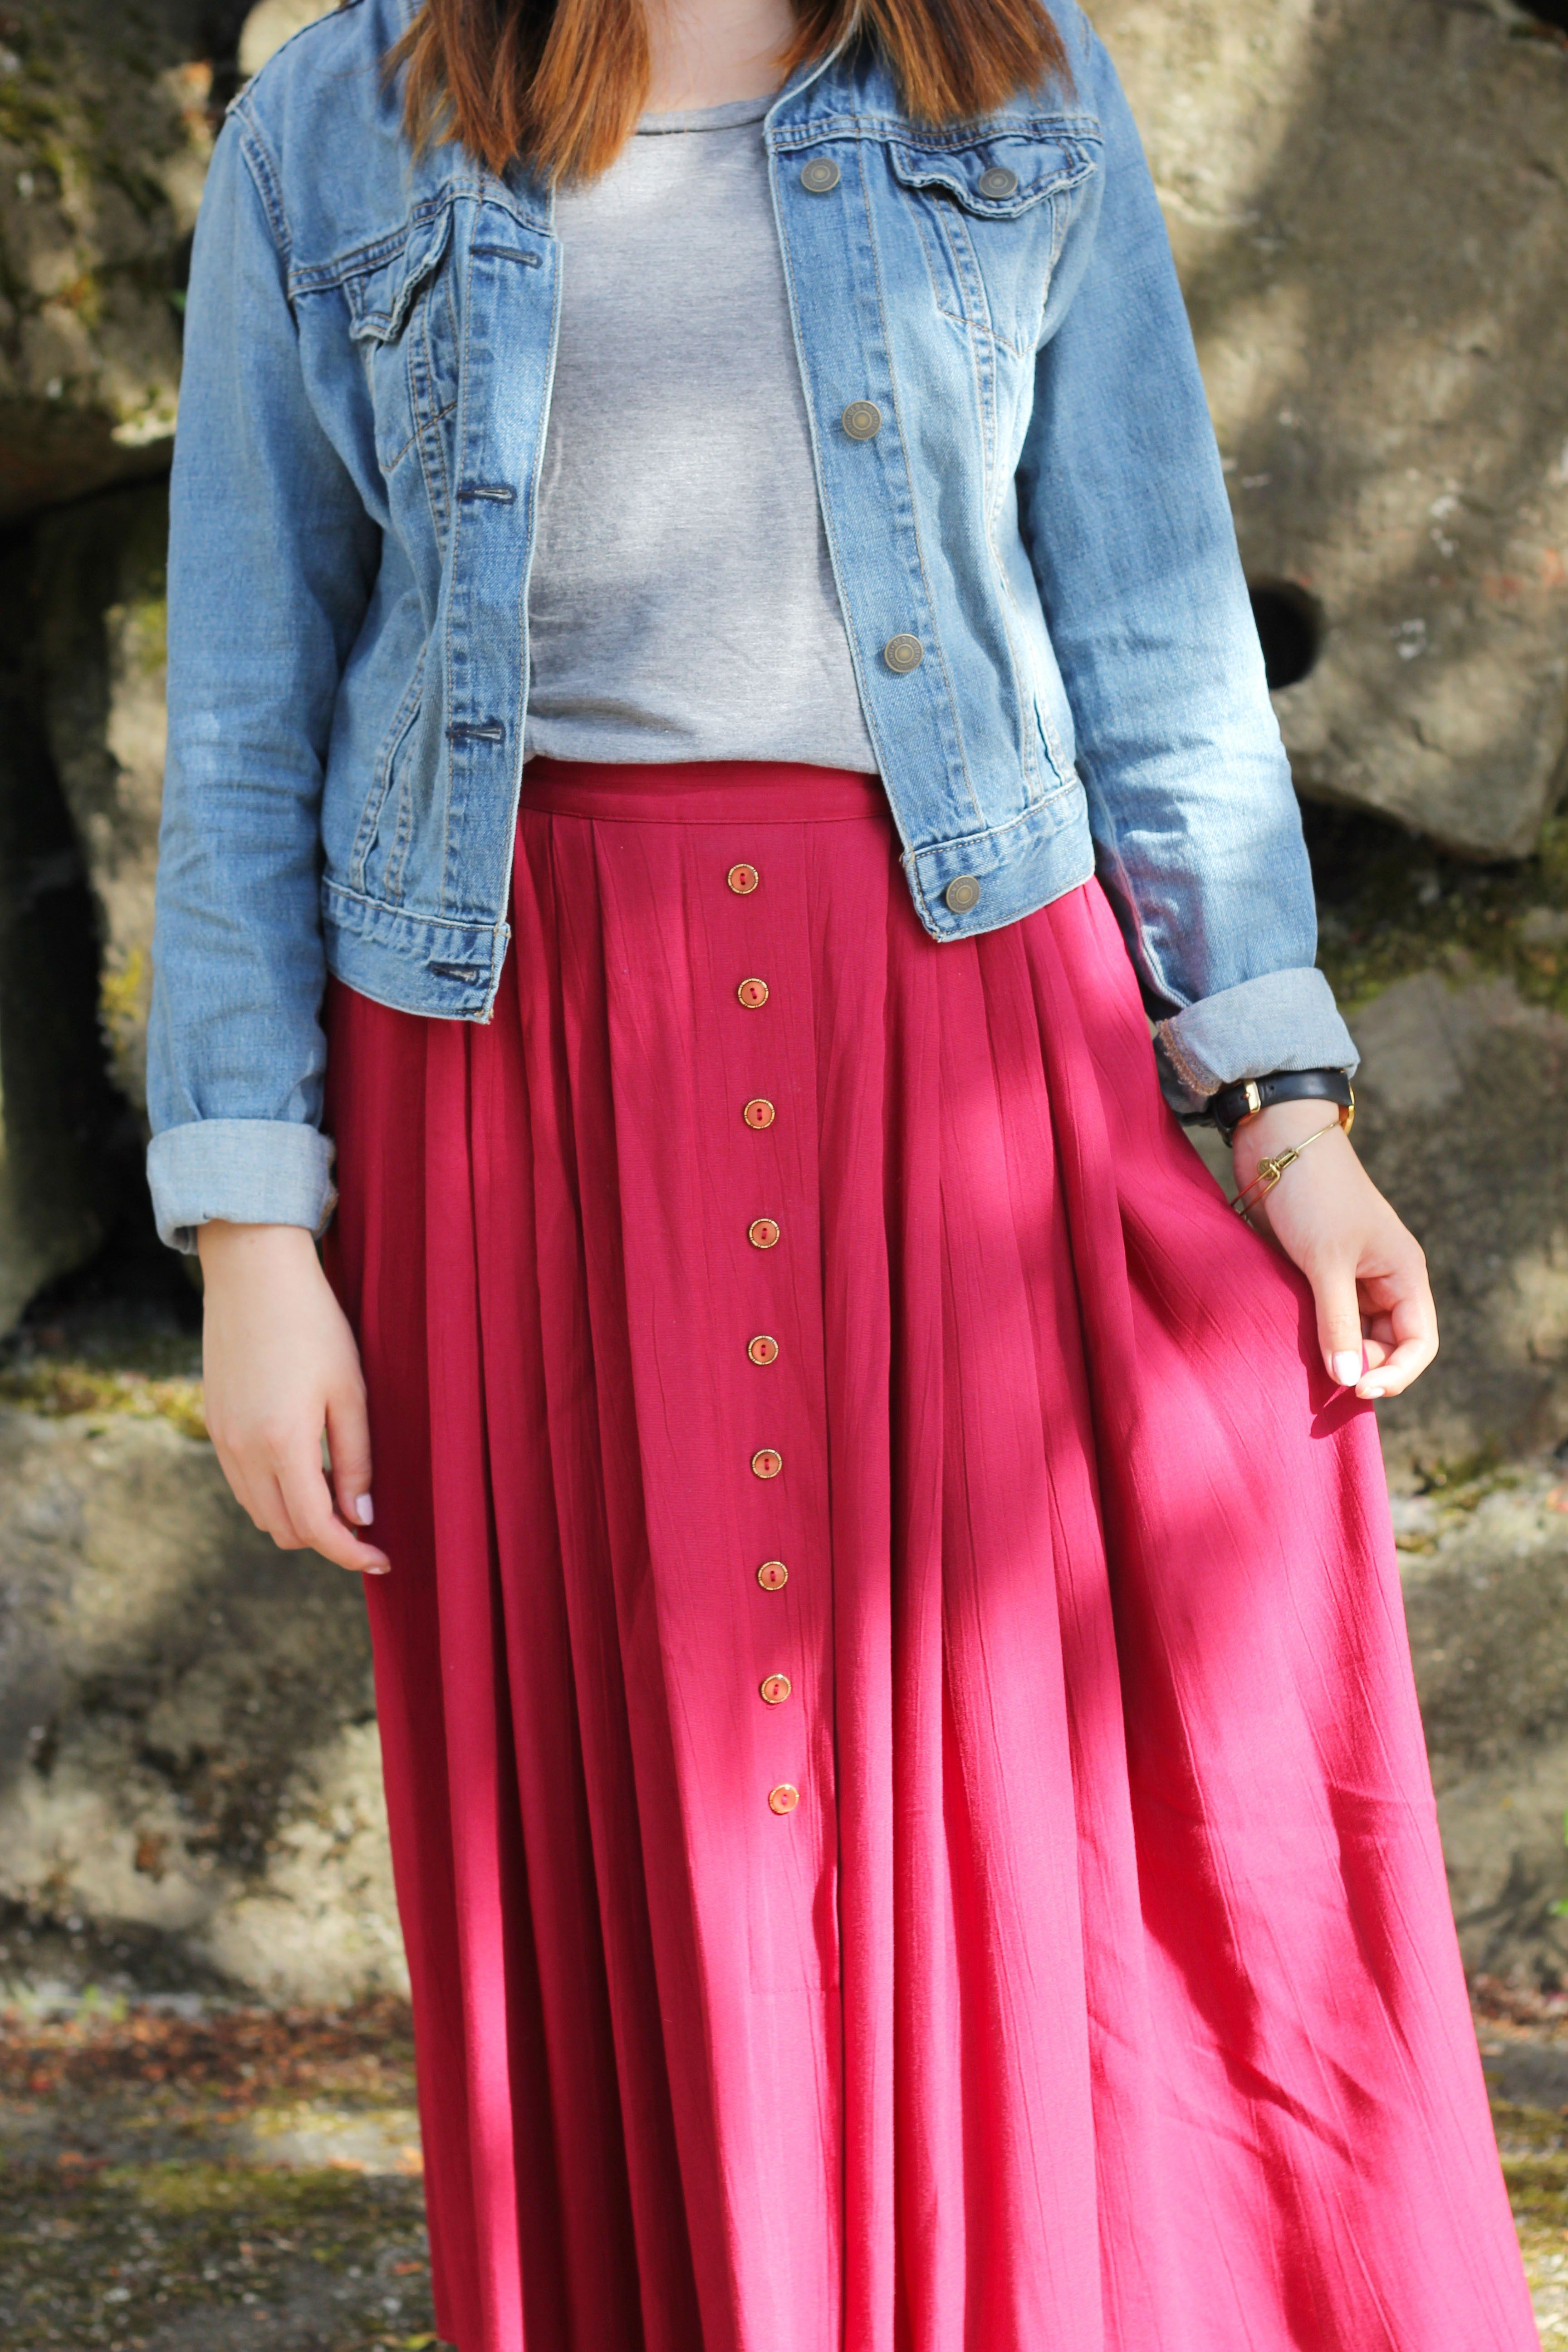 Pink dress with jean jacket  Red Maxi Skirt with Jean Jacket Outfit  spring u summer style